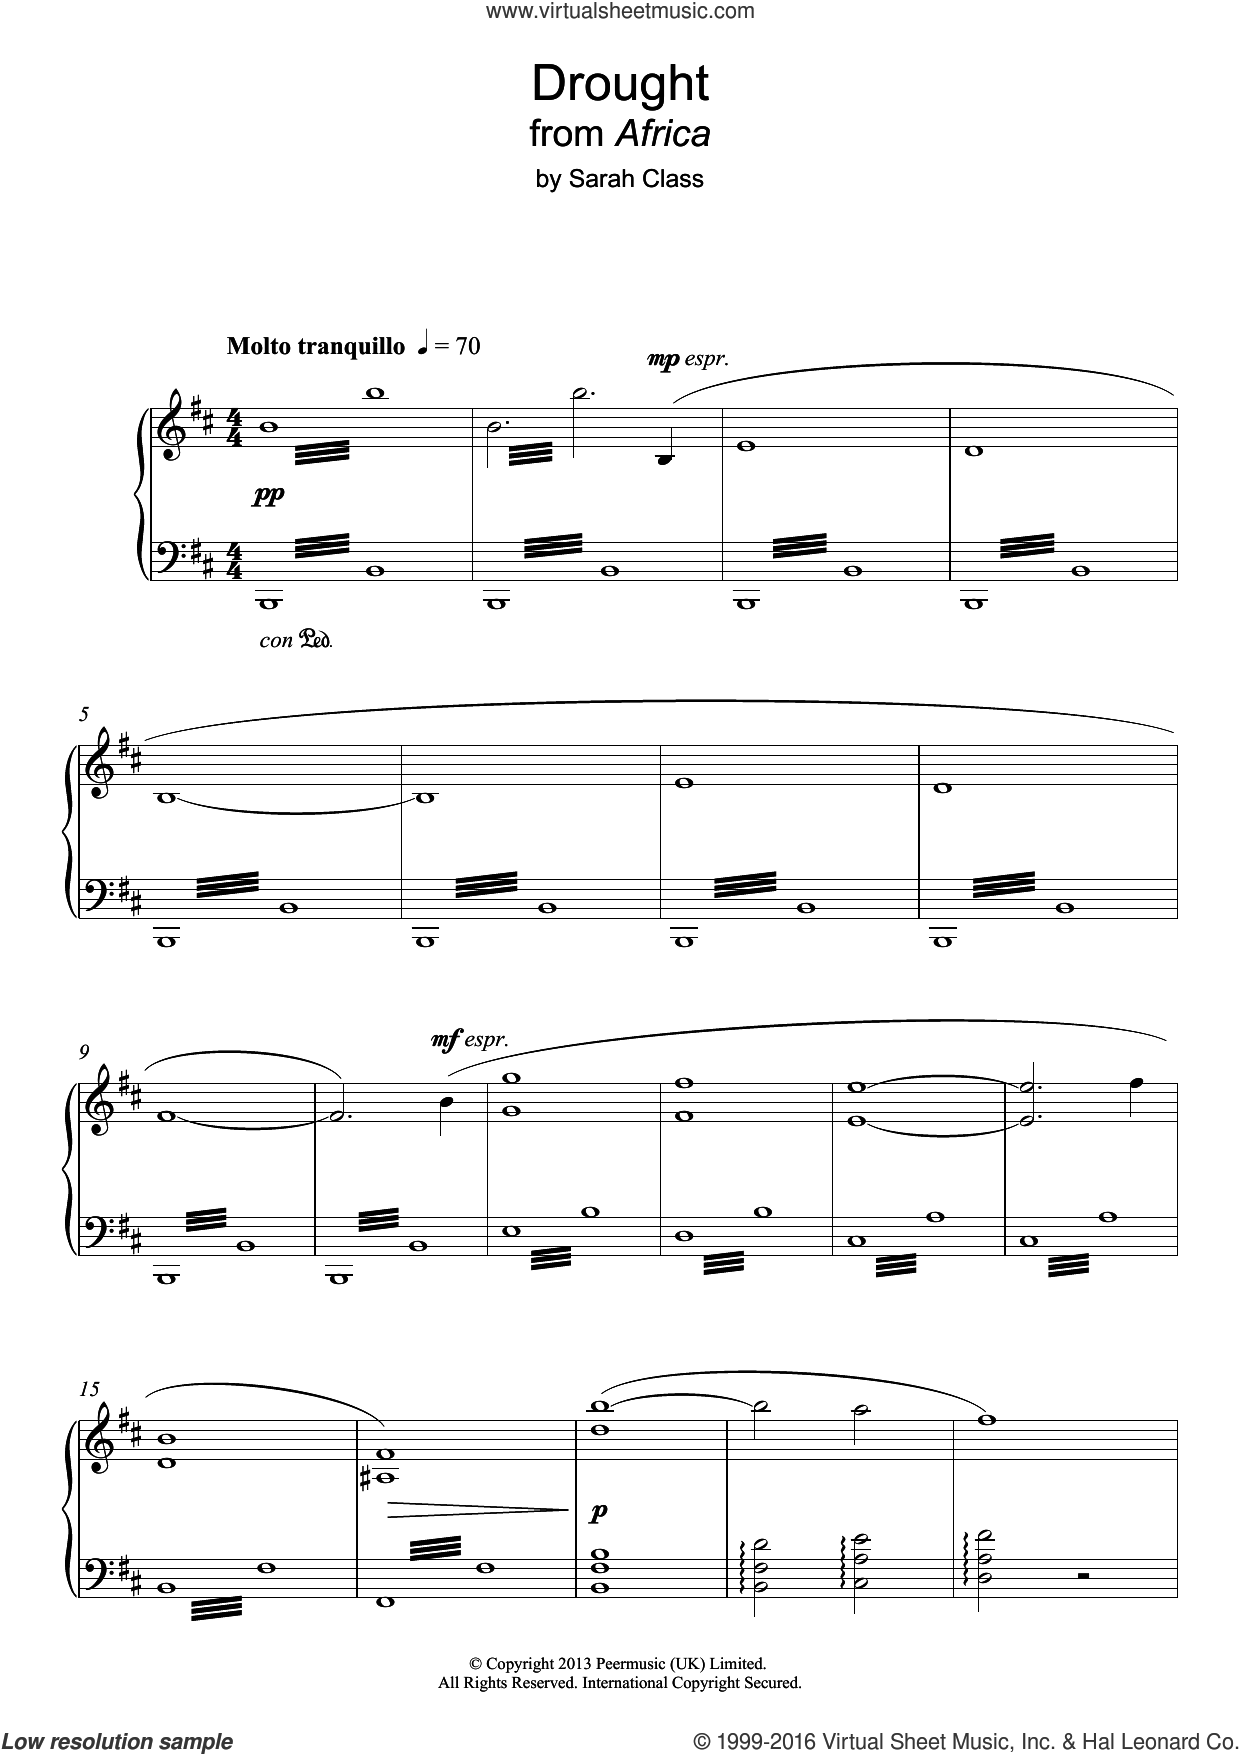 Drought (from 'Africa') sheet music for piano solo by Sarah Class